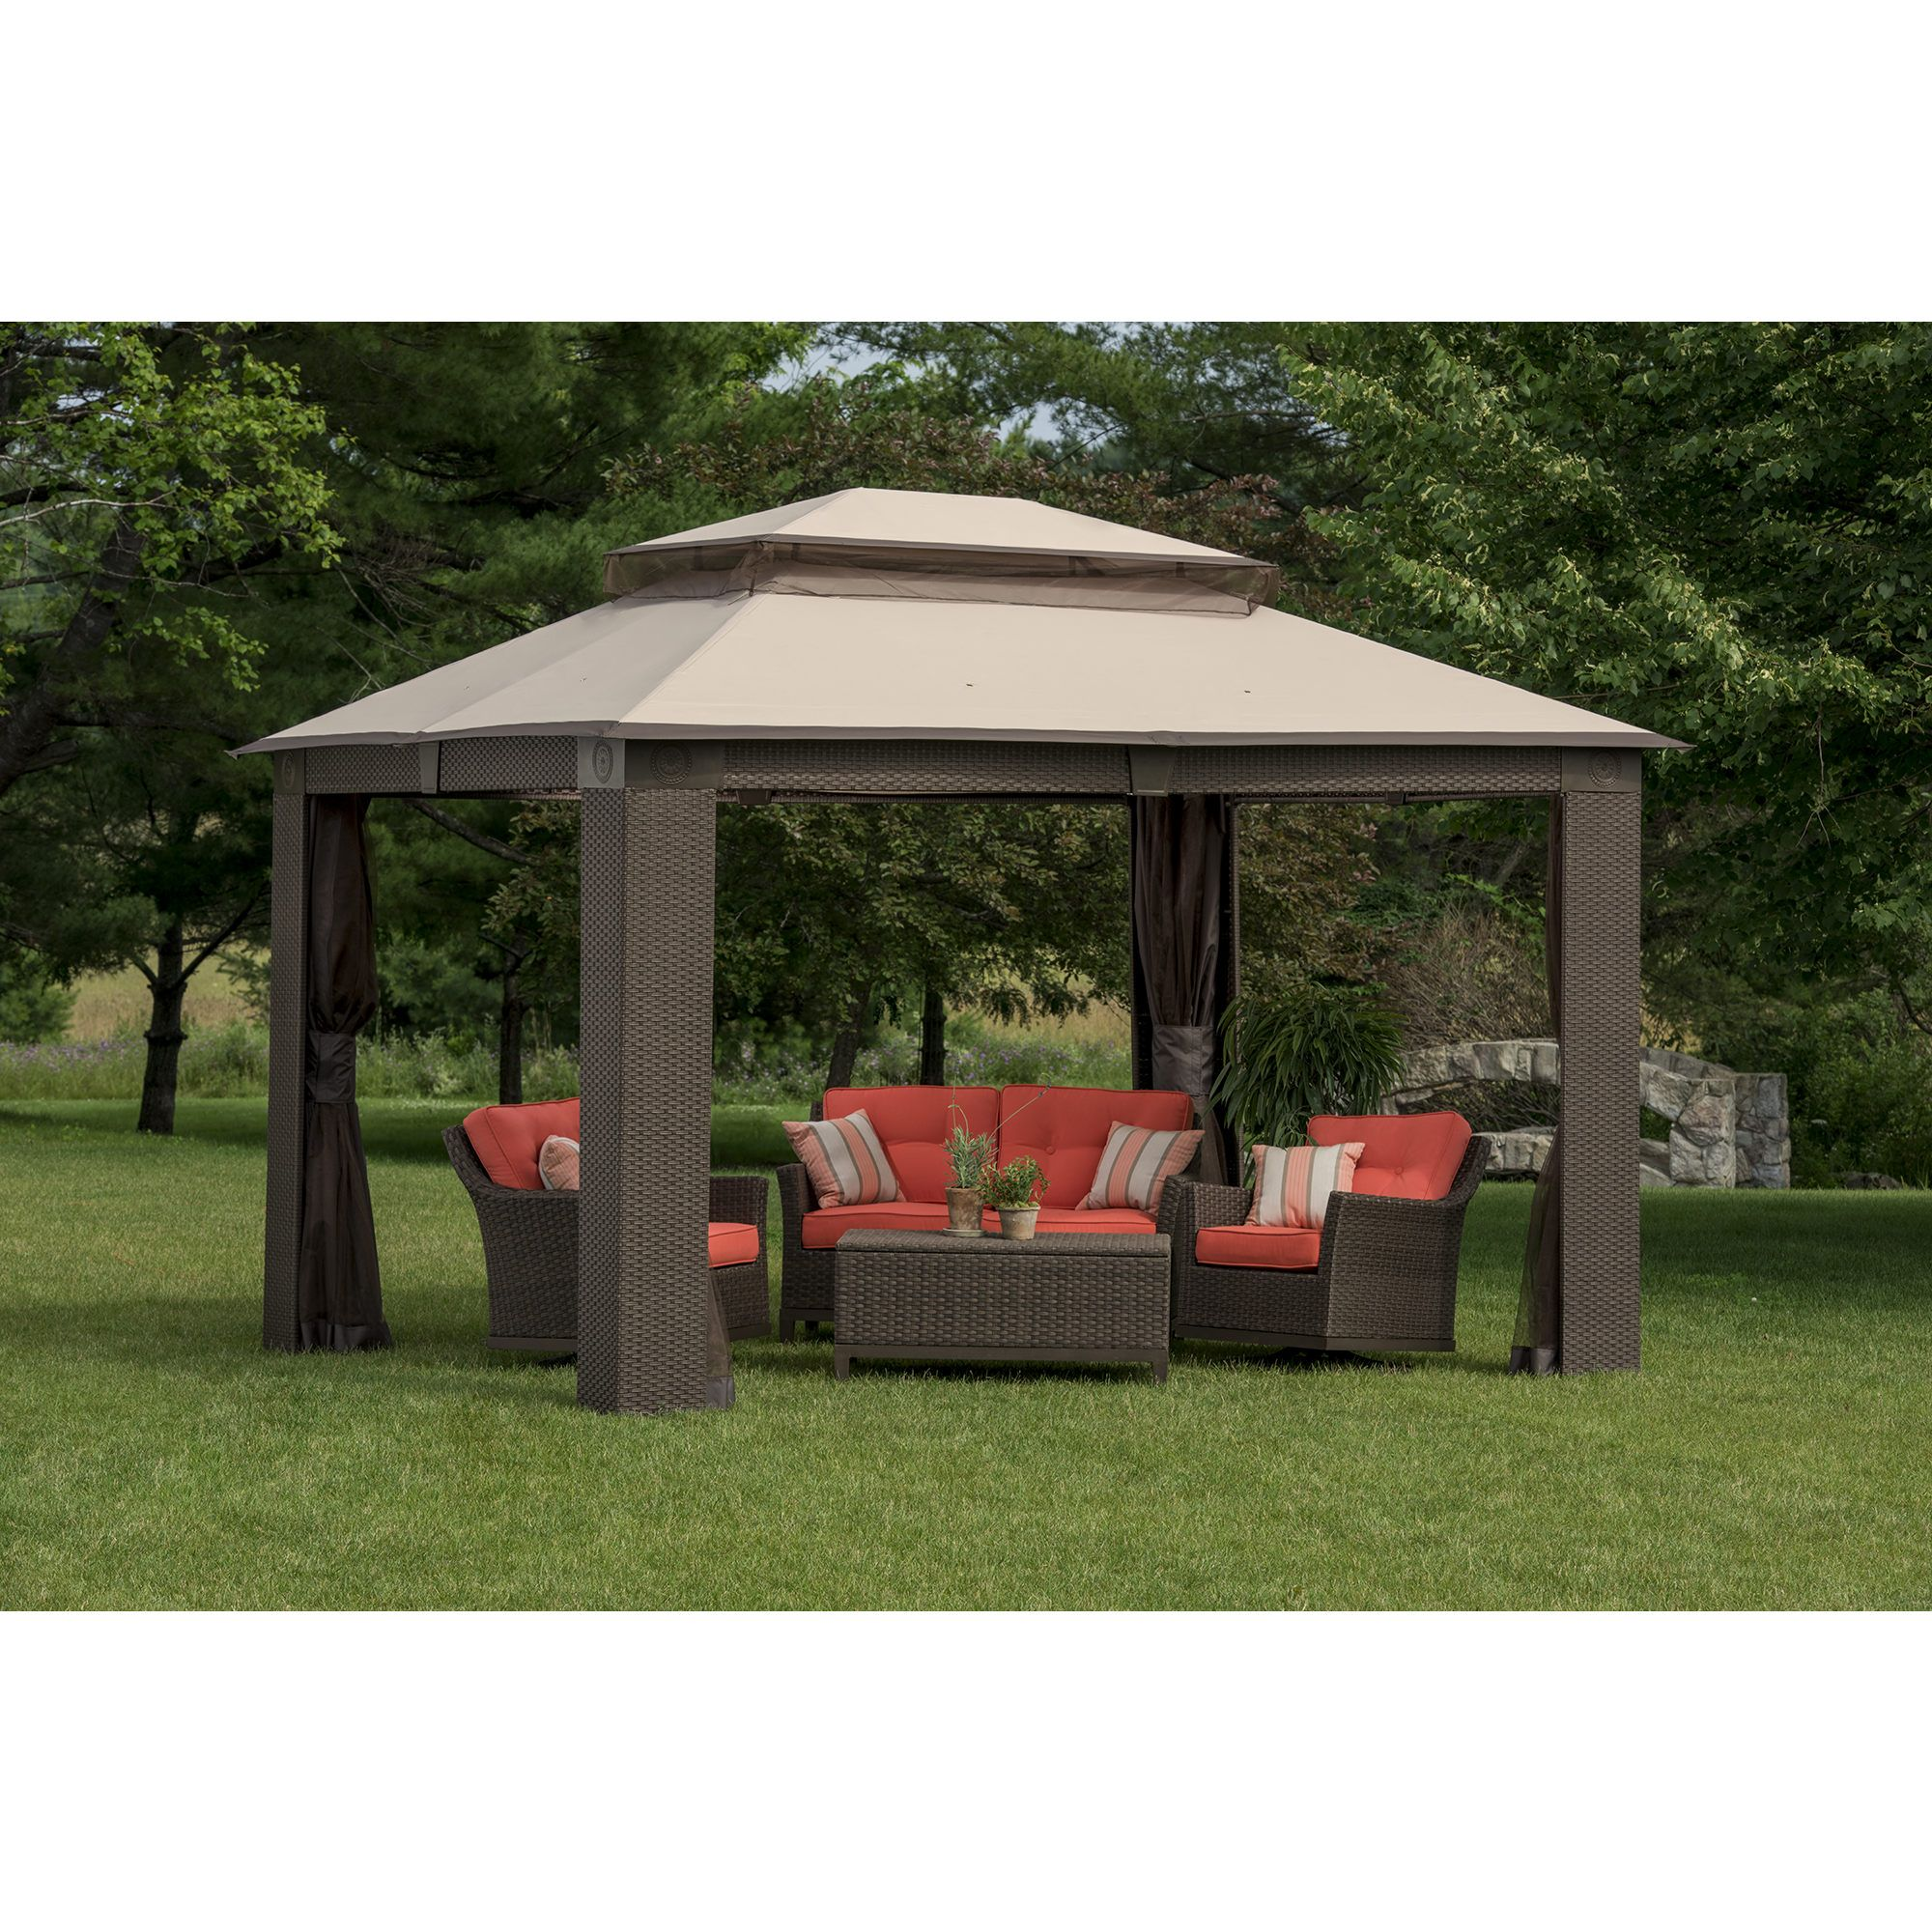 berkley jensen antigua wicker and aluminum gazebo bjs wholesale